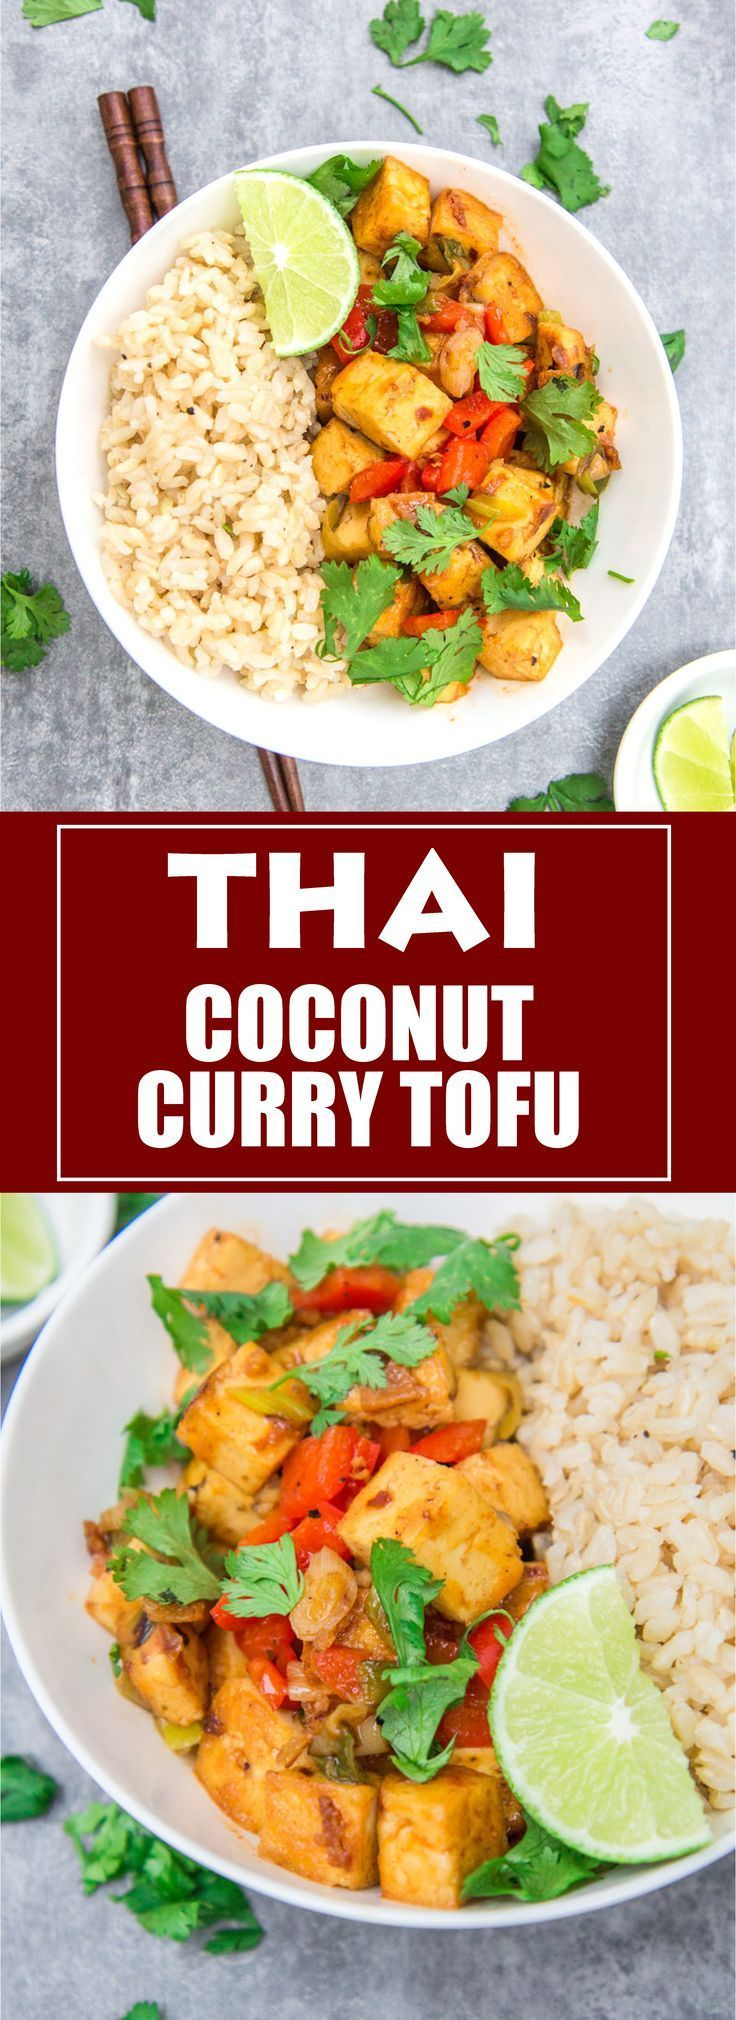 Choosingchia.com| This Thai coconut curry tofu is bursting with flavours of Thailand! You'll want to eat tofu like this every day!